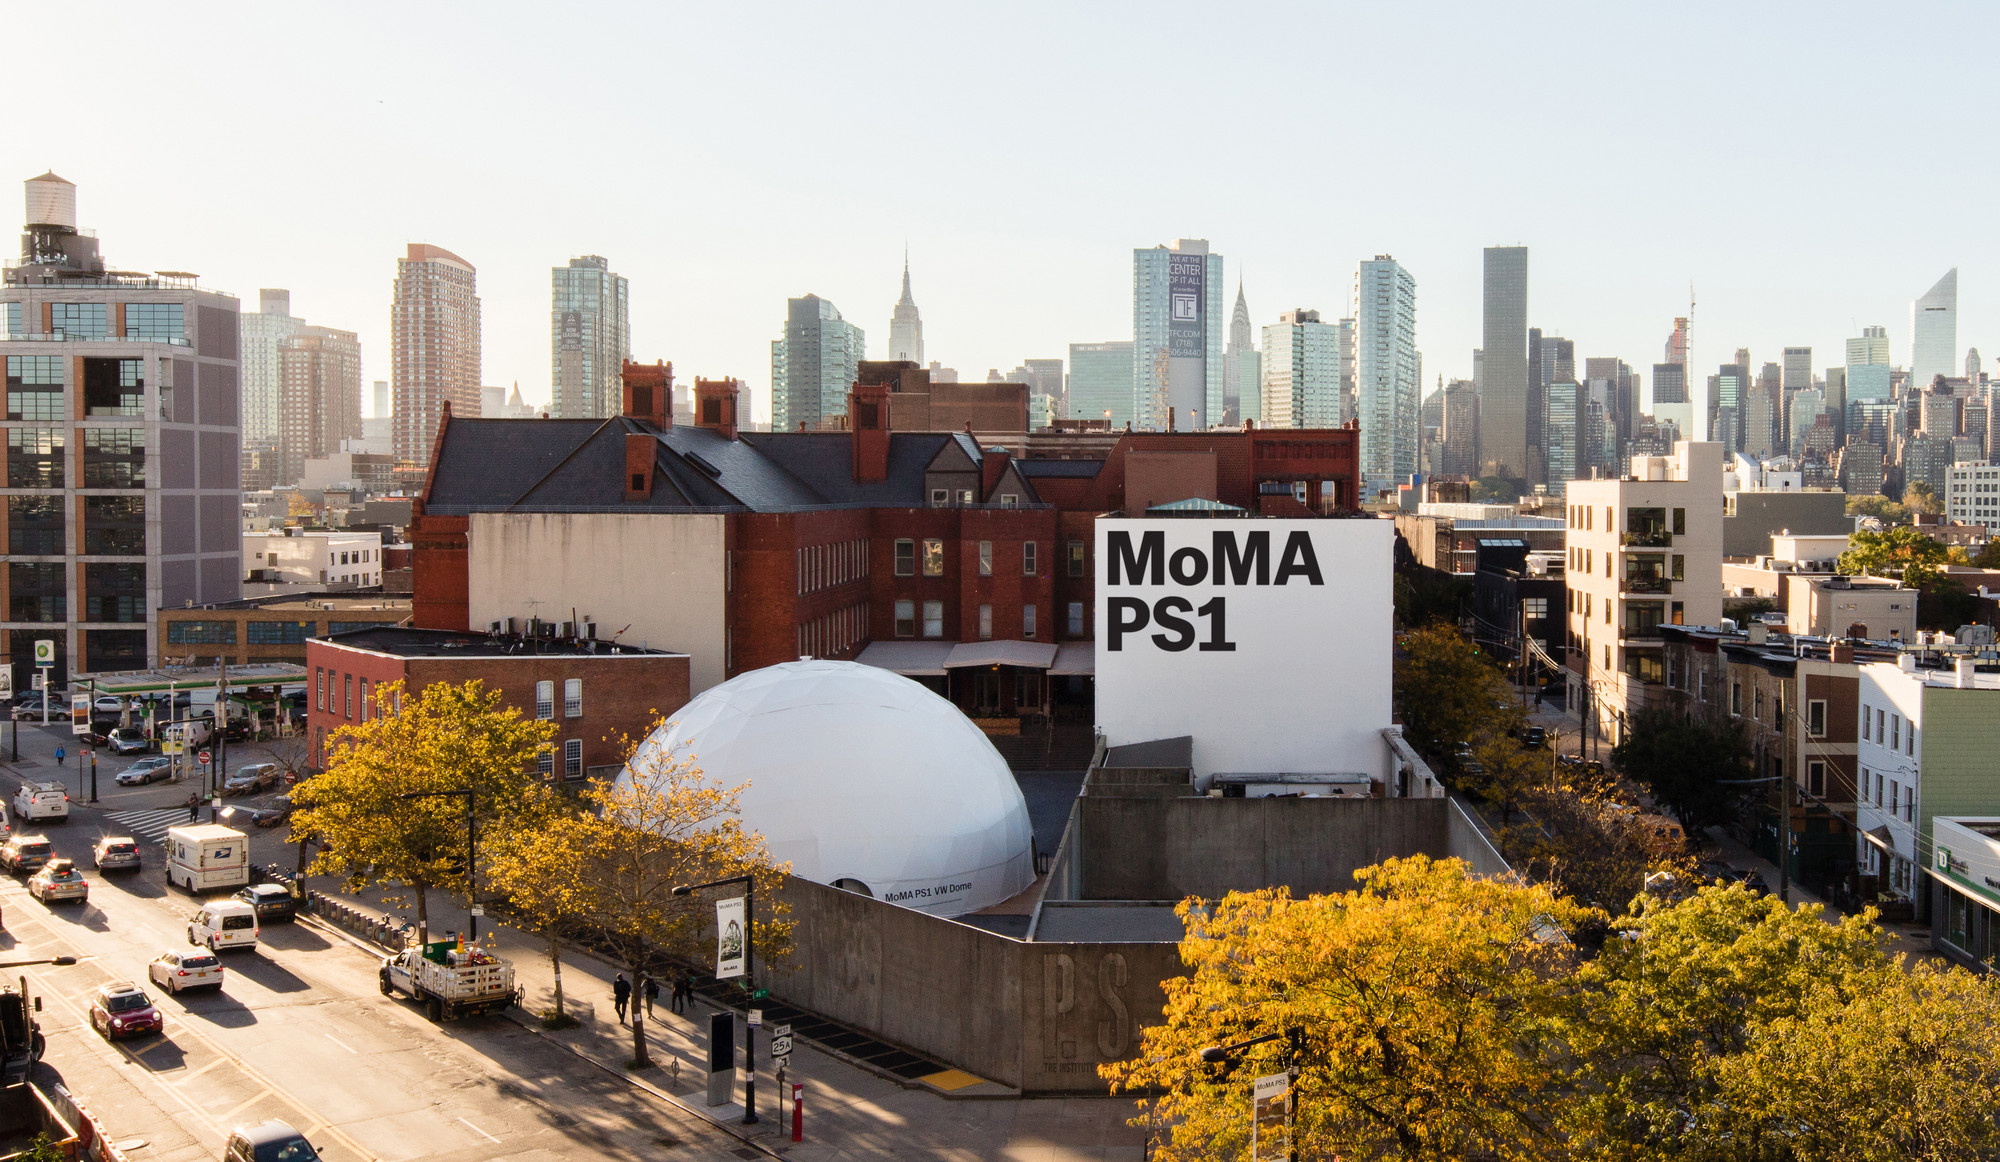 Exterior view of MoMA PS1